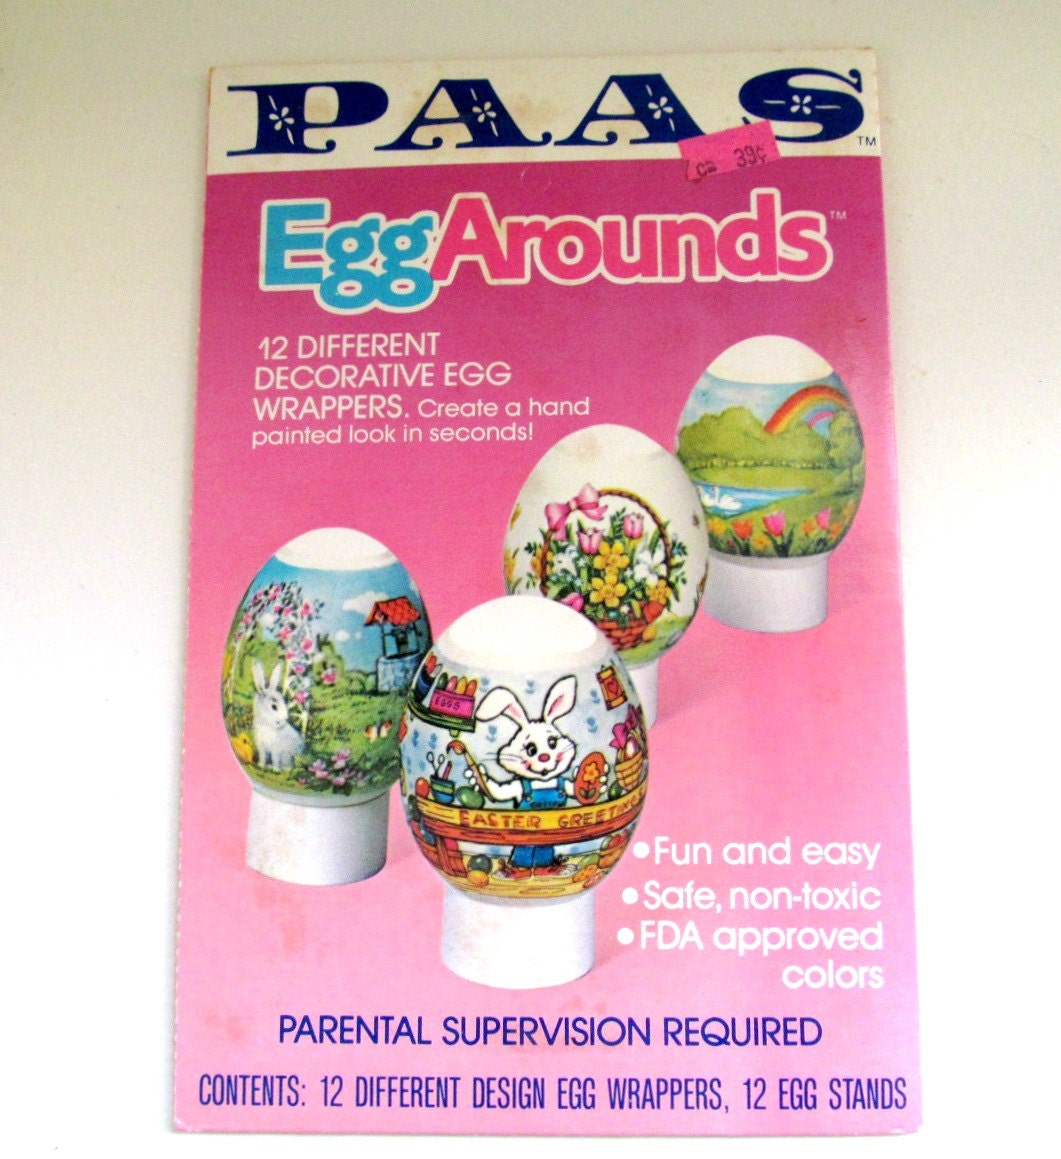 Easter Egg Decorating Kit  28 Images  Vintage 1980s Paas. Marble Countertops For Kitchen. Matching Kitchen Floor And Wall Tiles. Hardwood Flooring Kitchener. Wood Countertops In Kitchen. Kitchen Paint Colors With Mahogany Cabinets. Rustic Kitchen Countertops. Elegant Kitchen Backsplash. Kitchen Countertop Home Depot